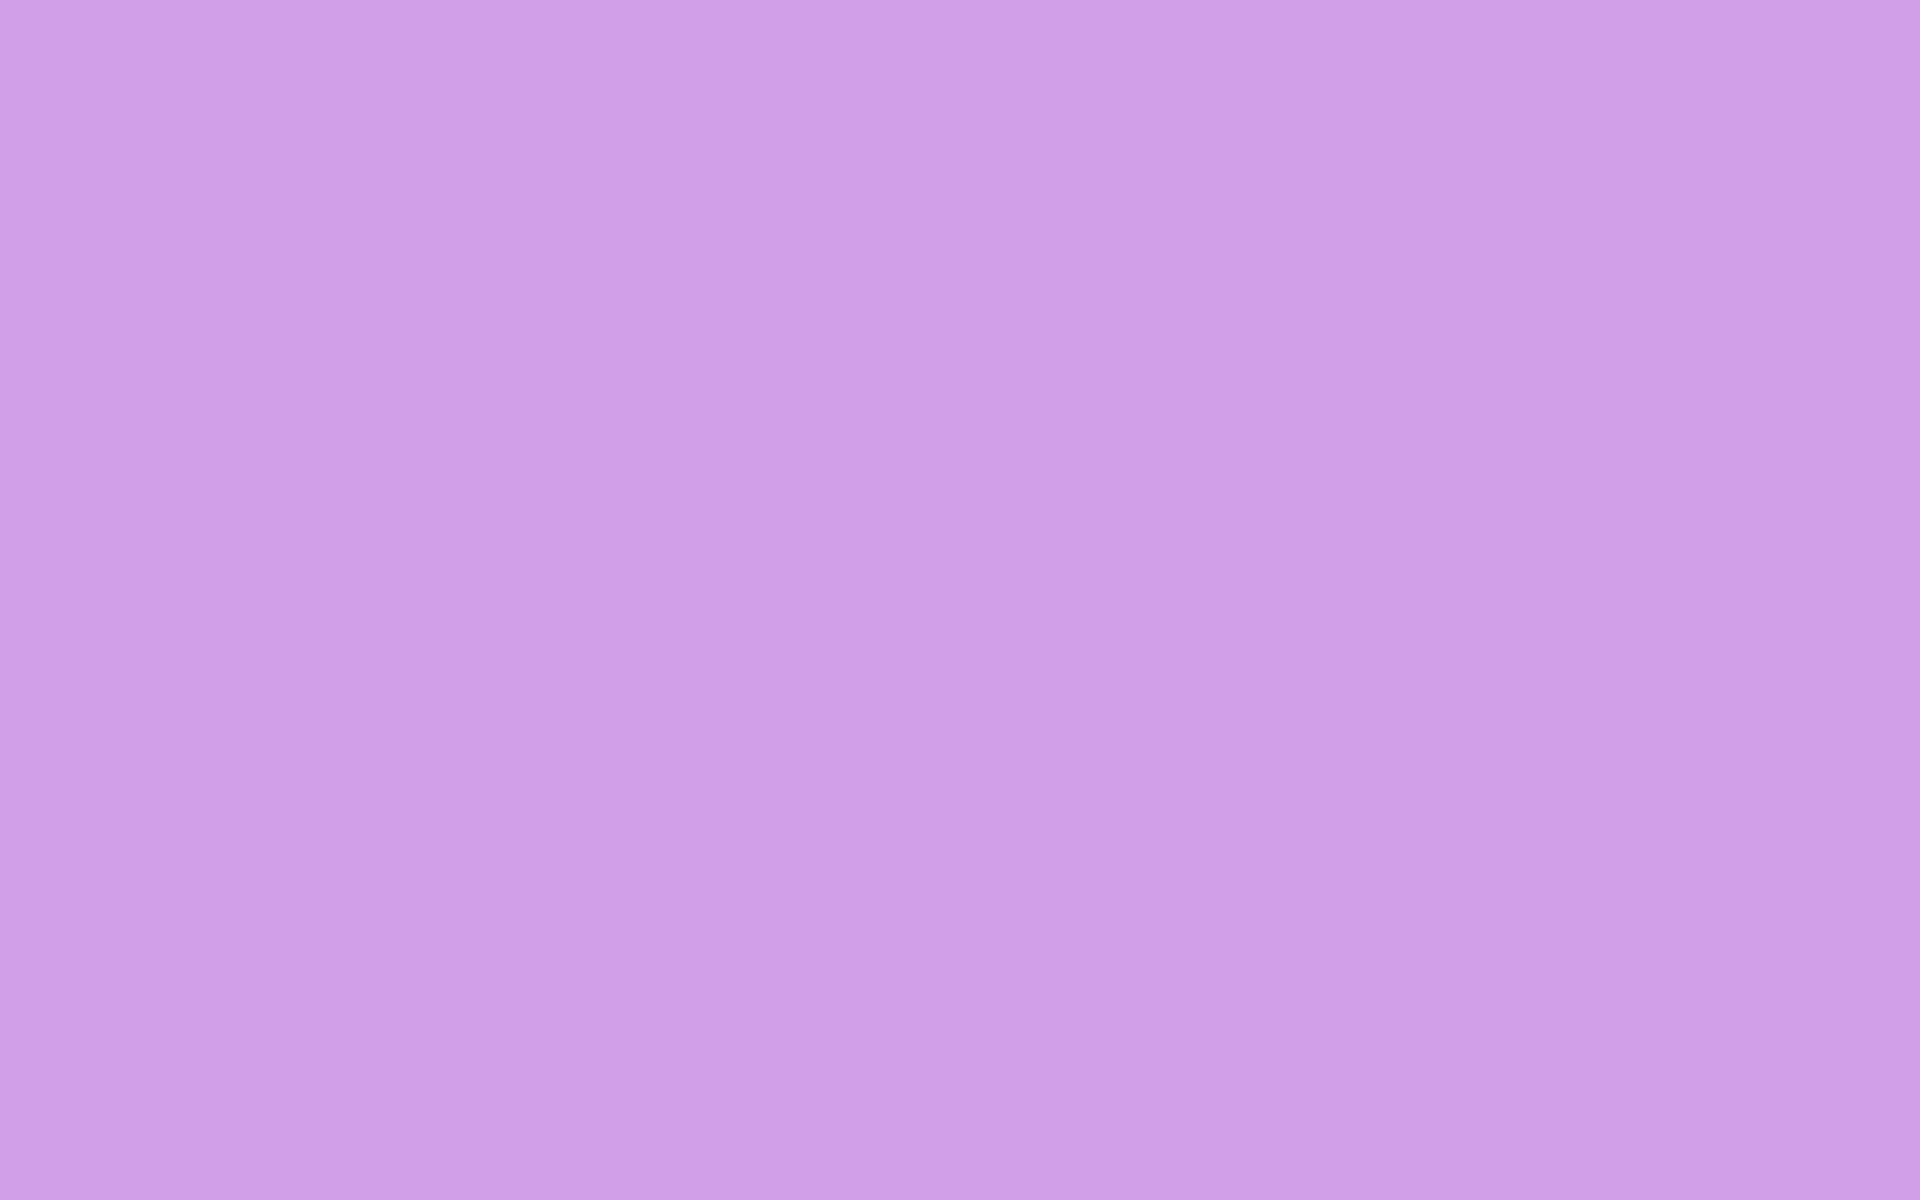 1920x1200 Bright Ube Solid Color Background